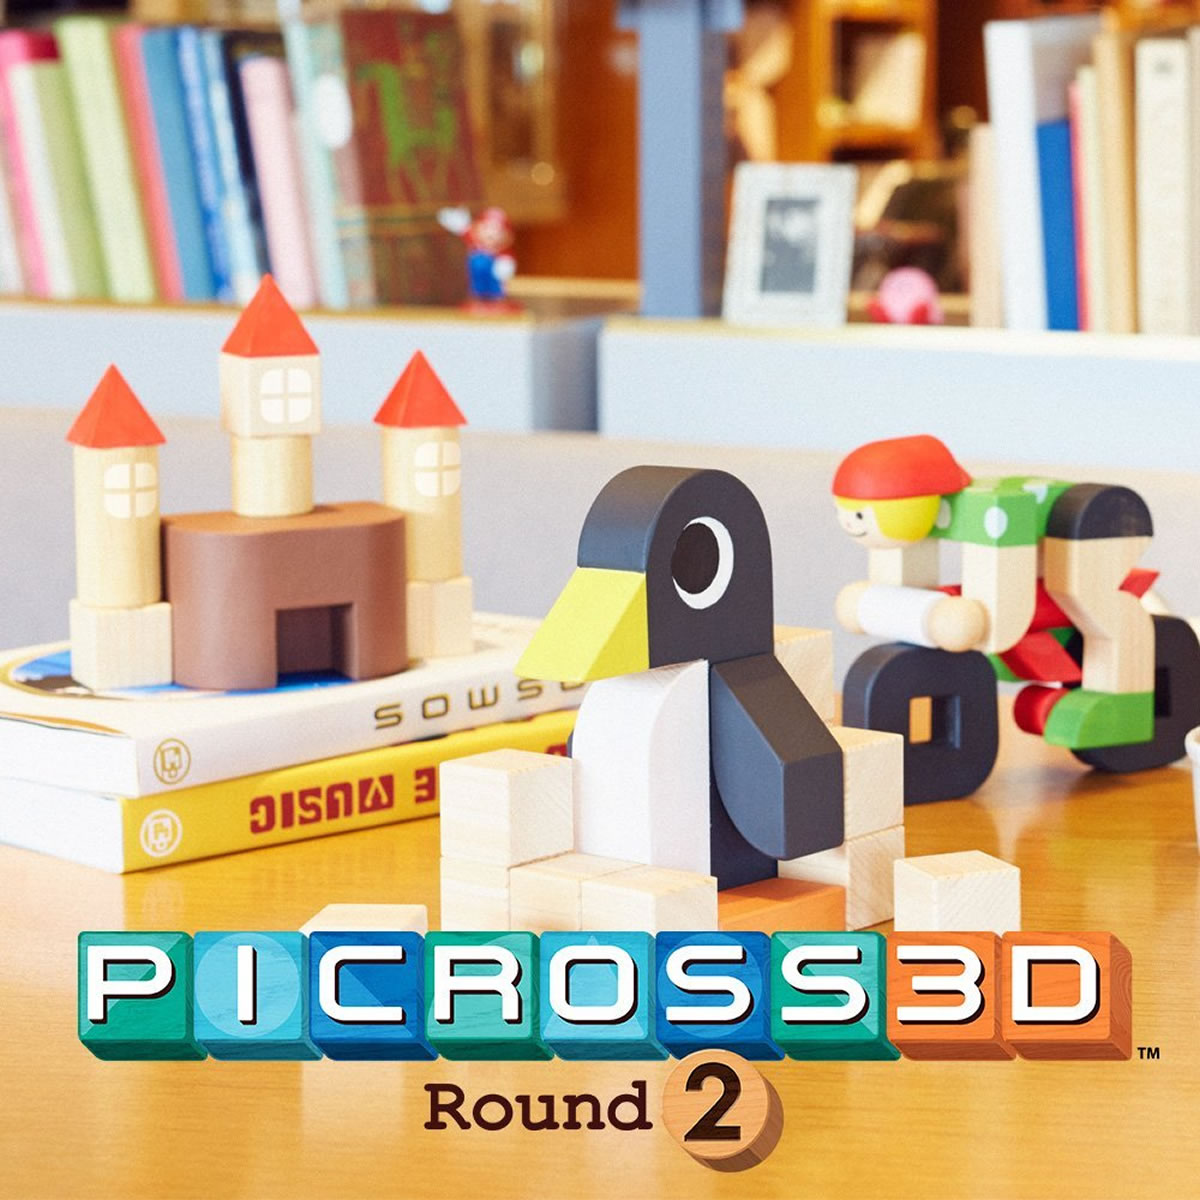 PICROSS 3D ROUND 2 (3DS)